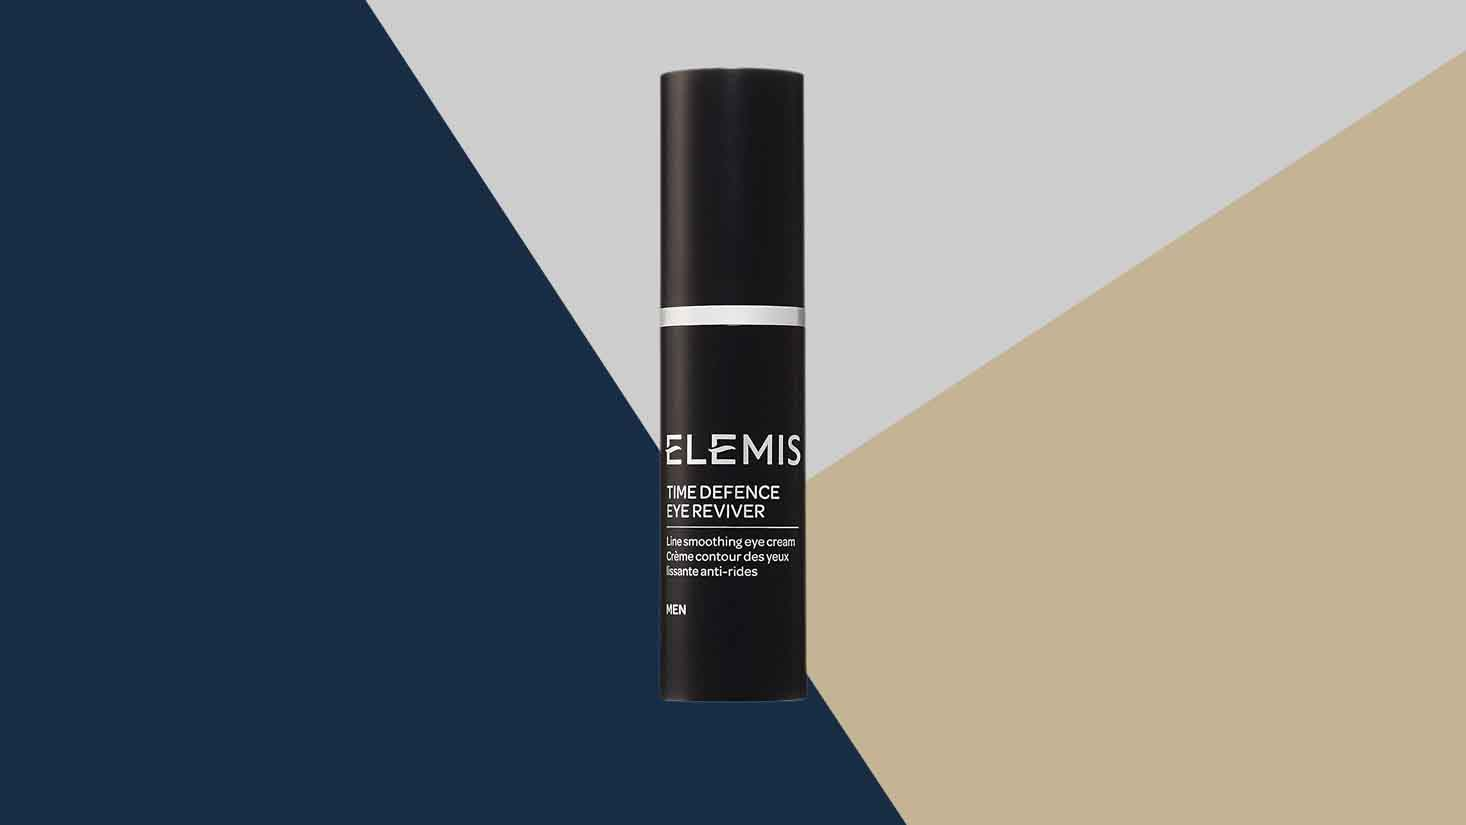 Best eye cream for men: Get rid of wrinkles, dark circles and bags with these top eye creams and serums